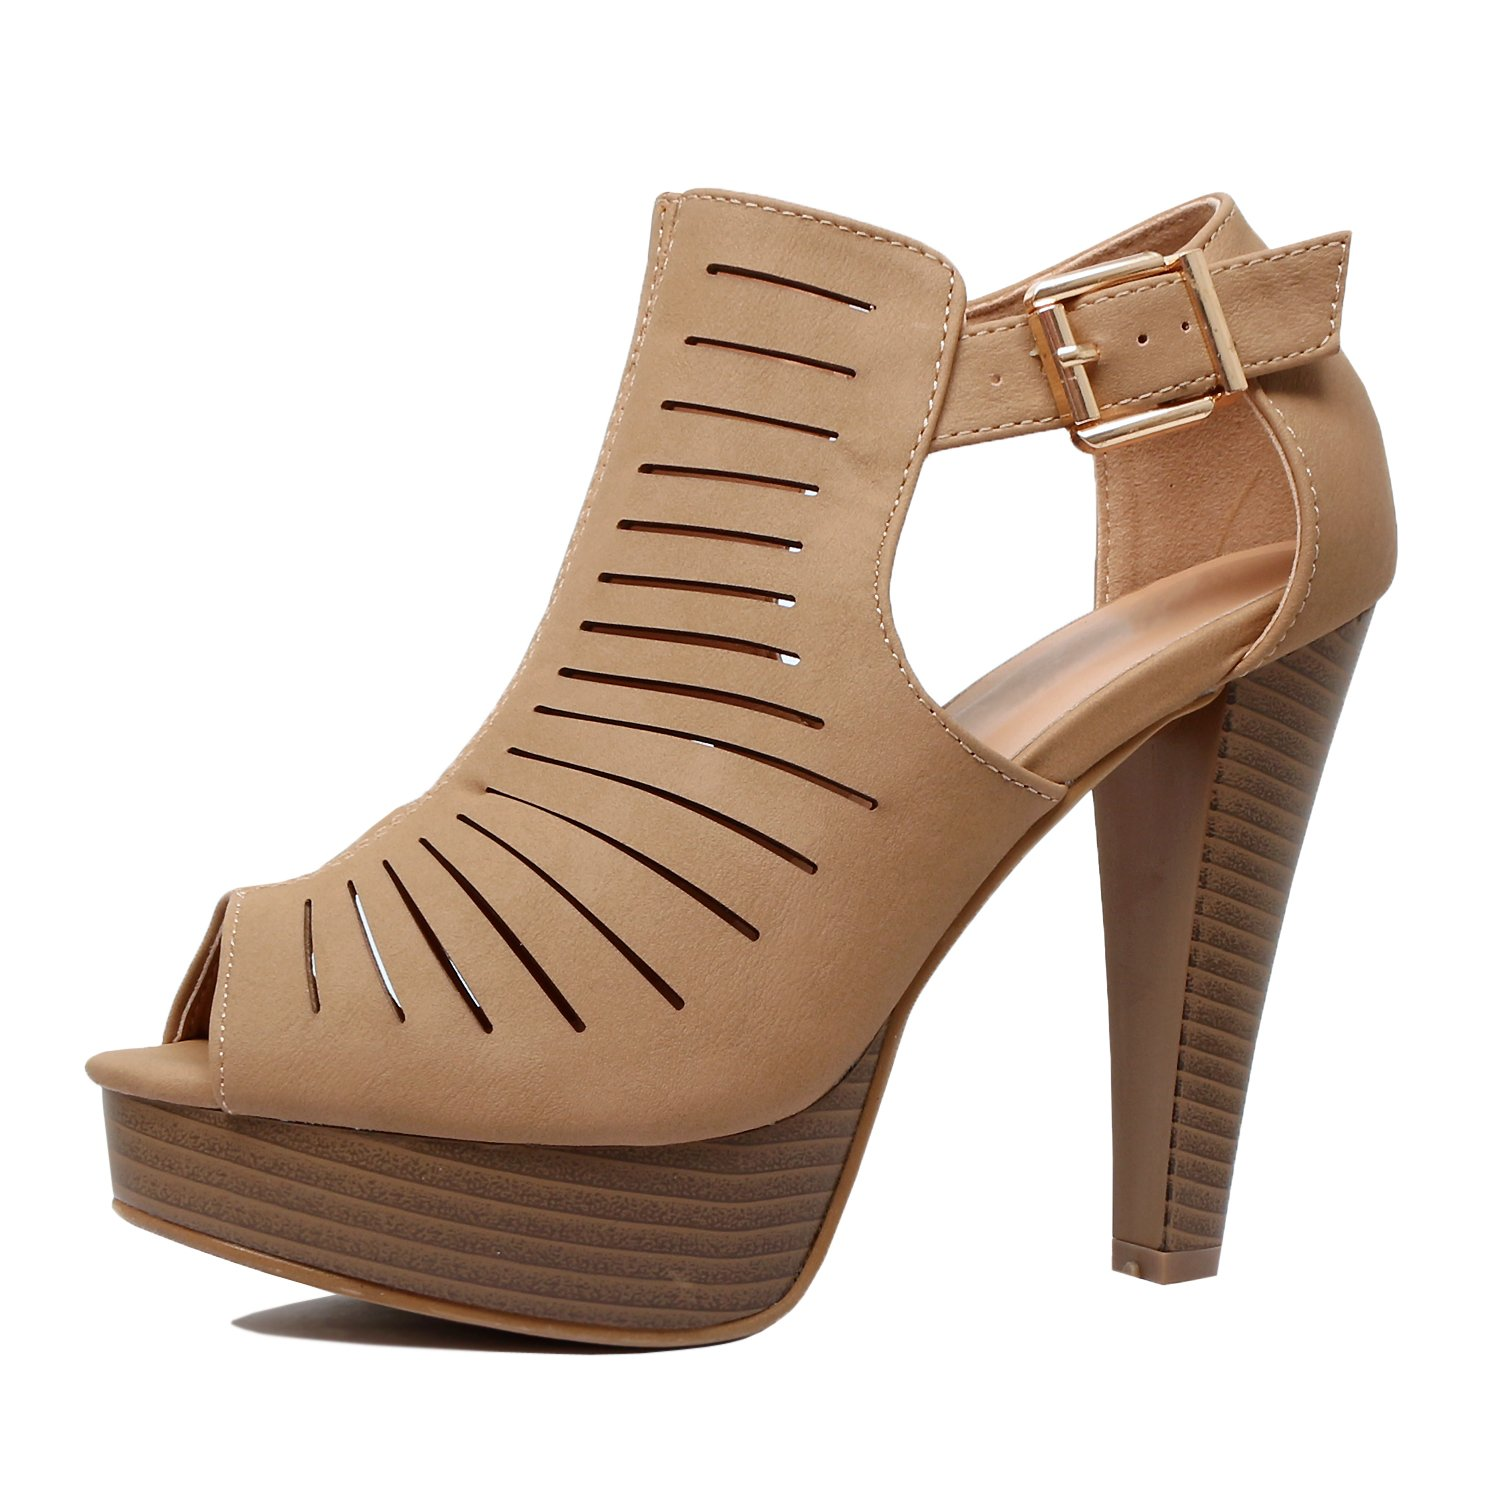 Guilty Shoes Cutout Gladiator Ankle Strap Platform Fashion Heeled Sandals, Tan Pu, 8.5